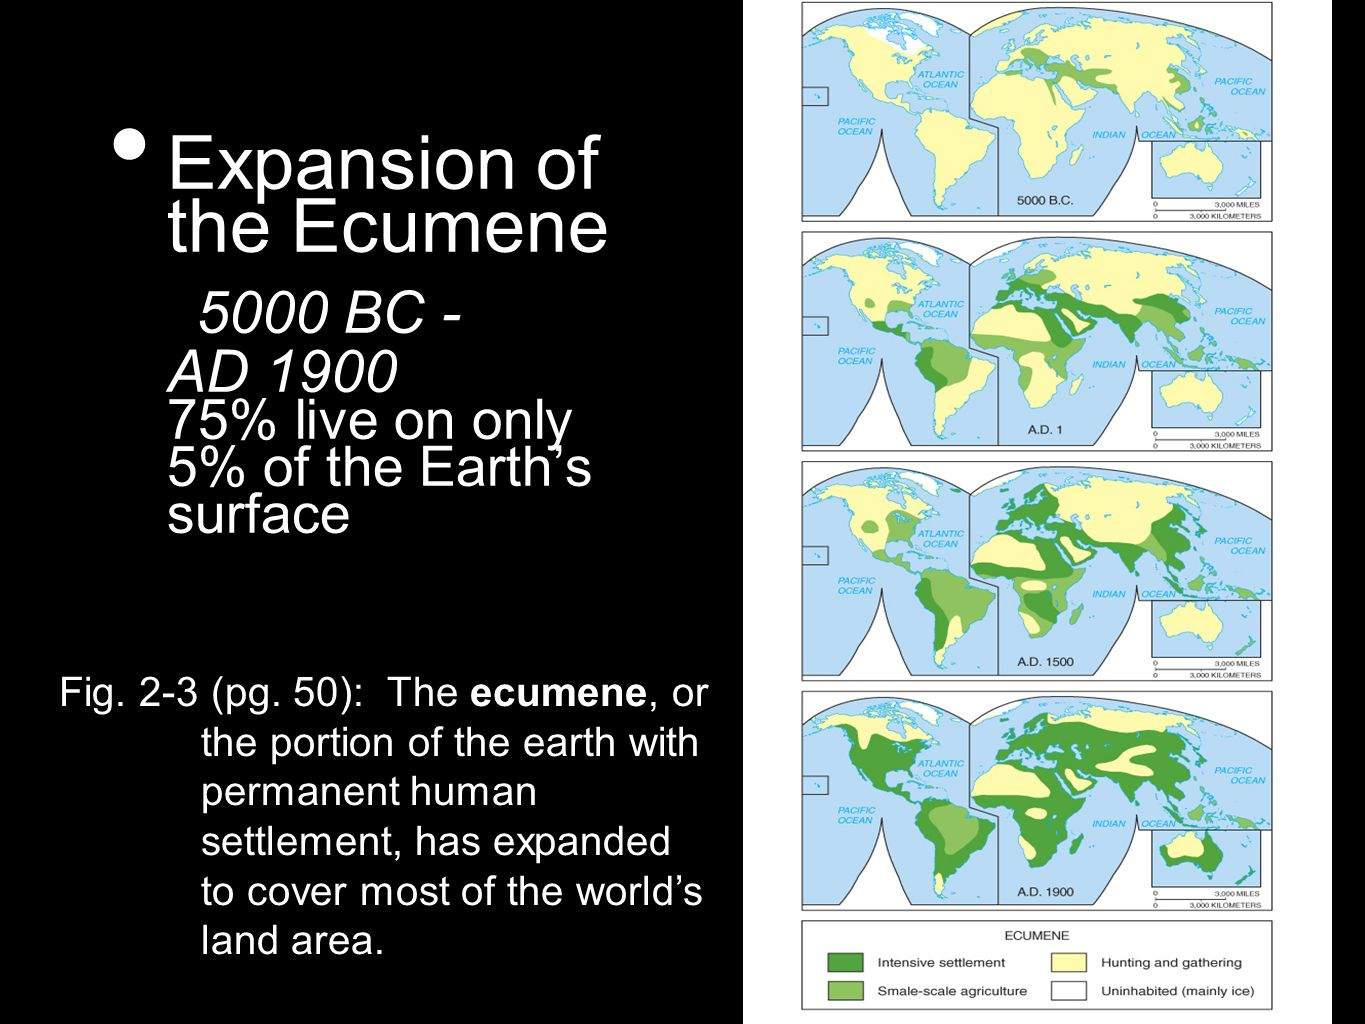 Expansion of the Ecumene 5000 BC - AD 1900 75% live on only 5% of the Earth's surface